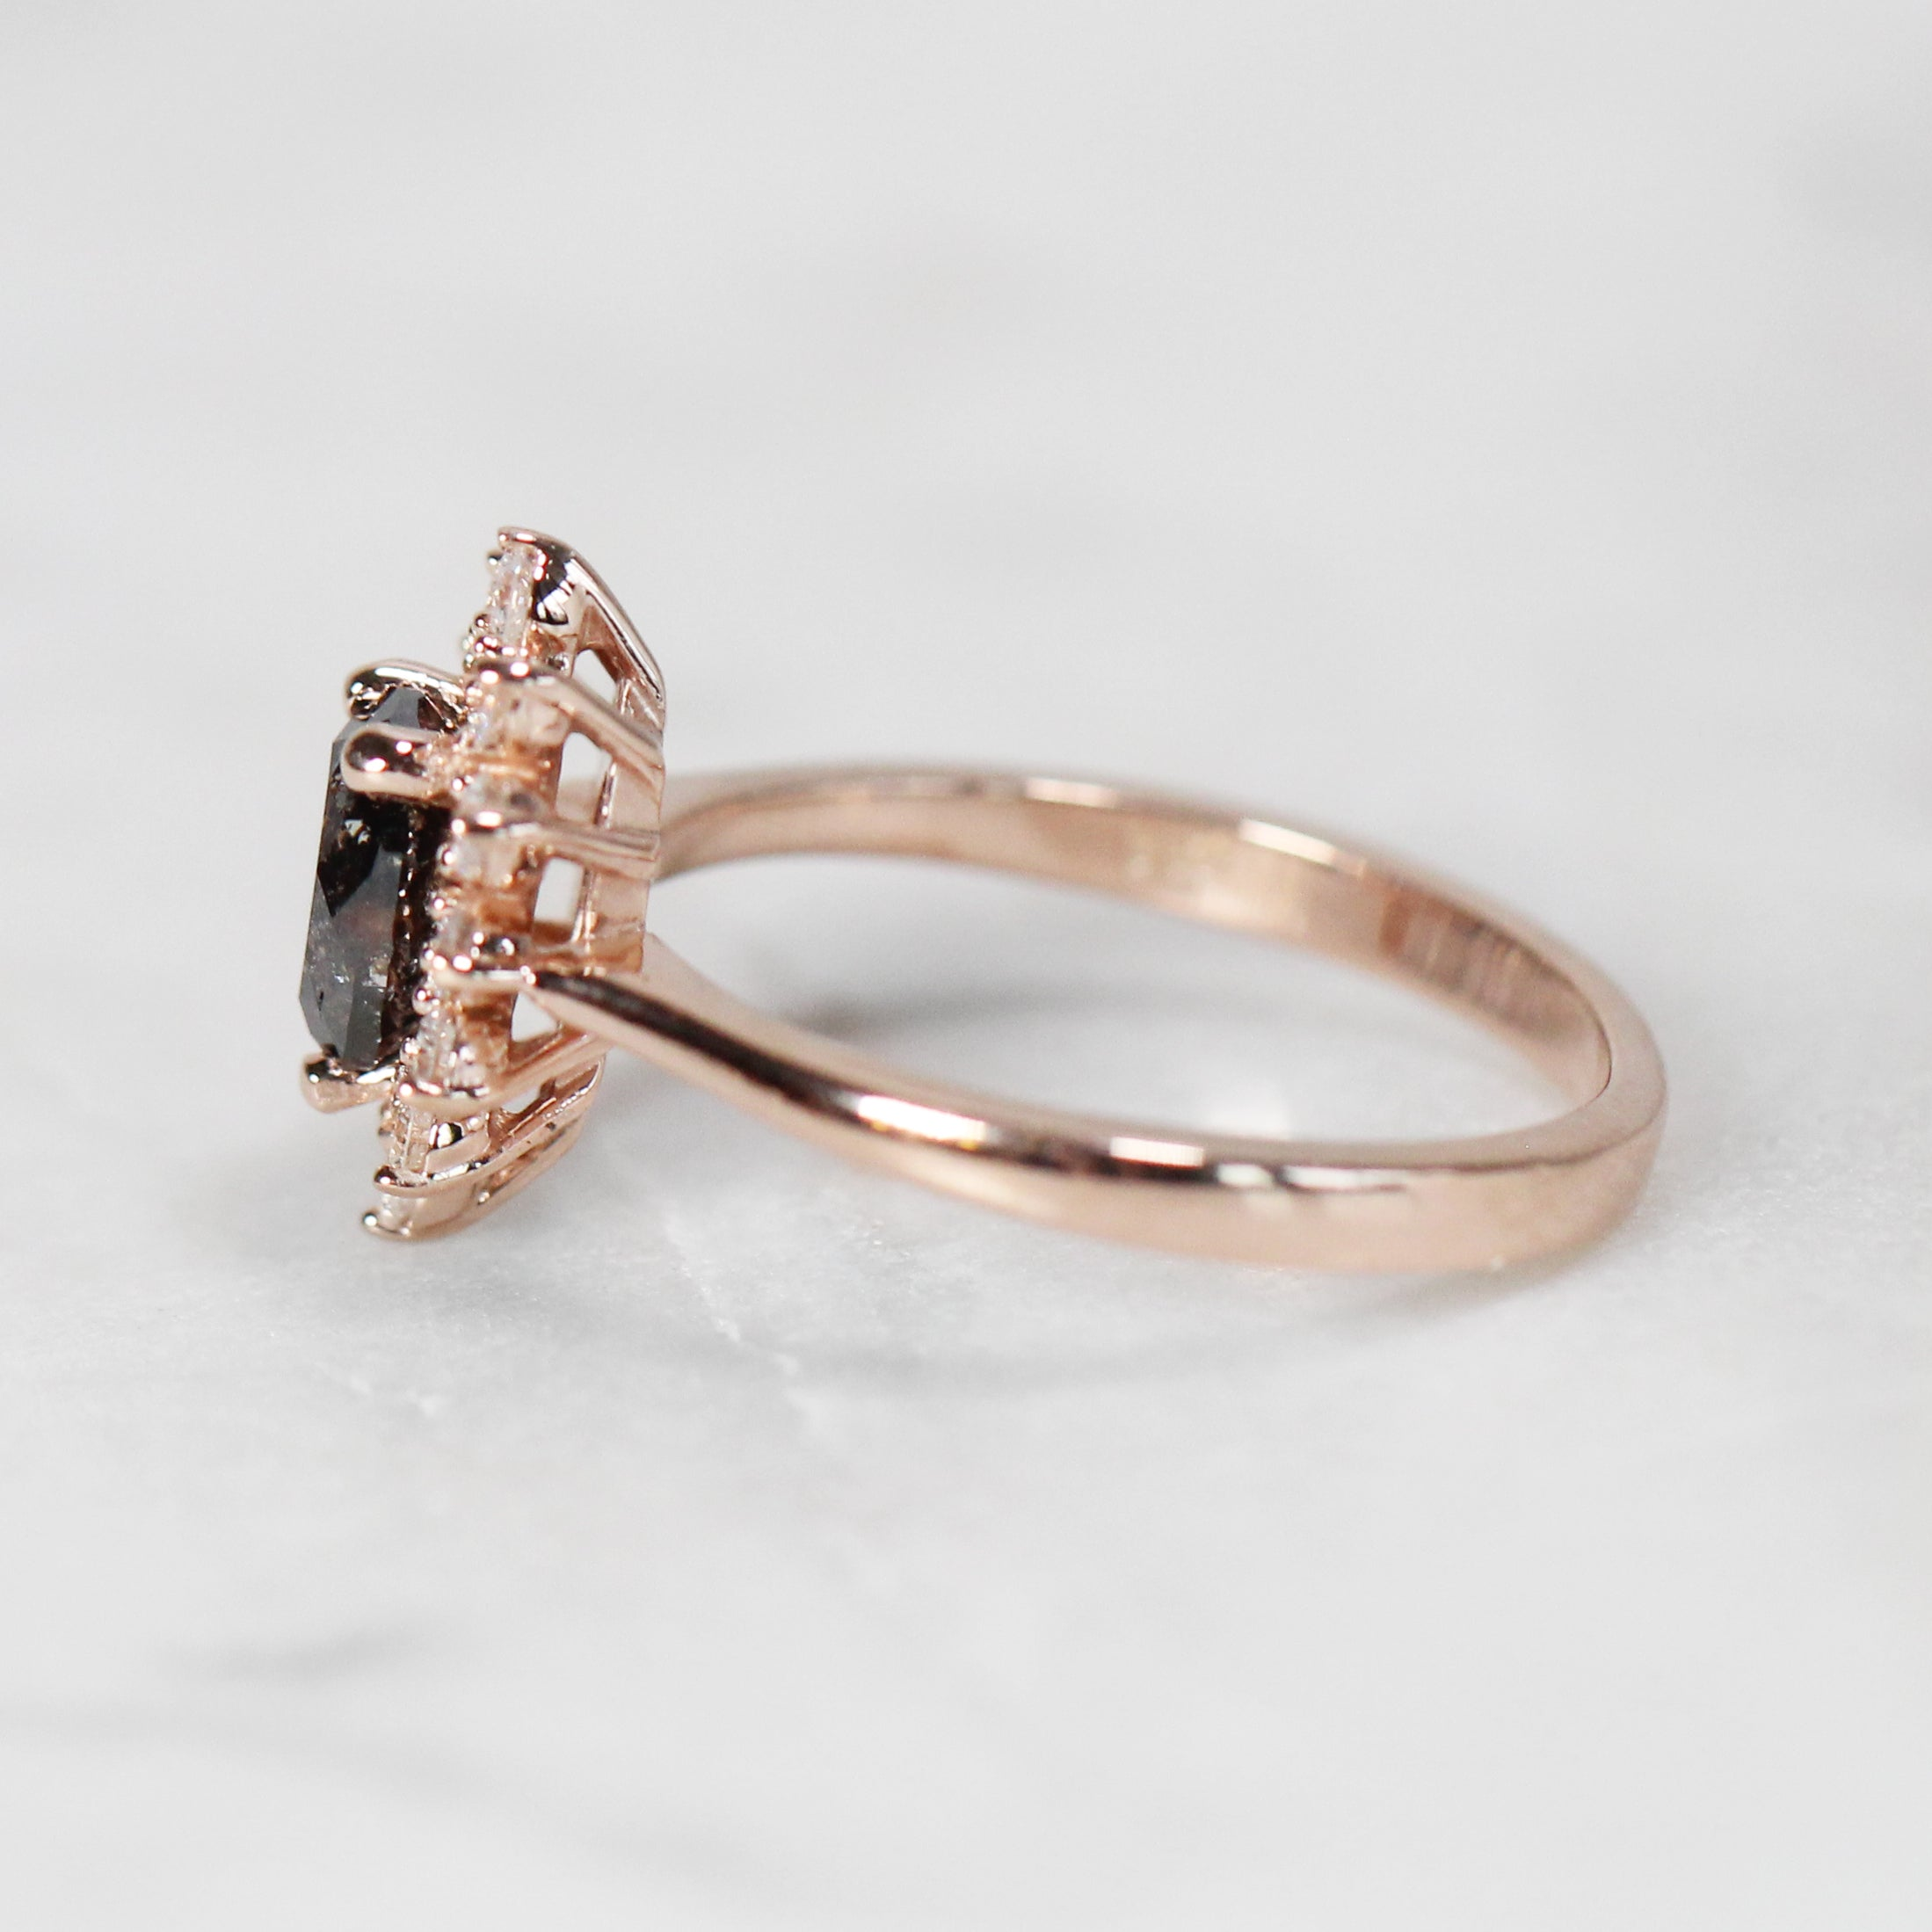 Lucy Ring with .93 Carat Pear Celestial Diamond in 10k Rose Gold - Ready to Size and Ship - Celestial Diamonds ® by Midwinter Co.